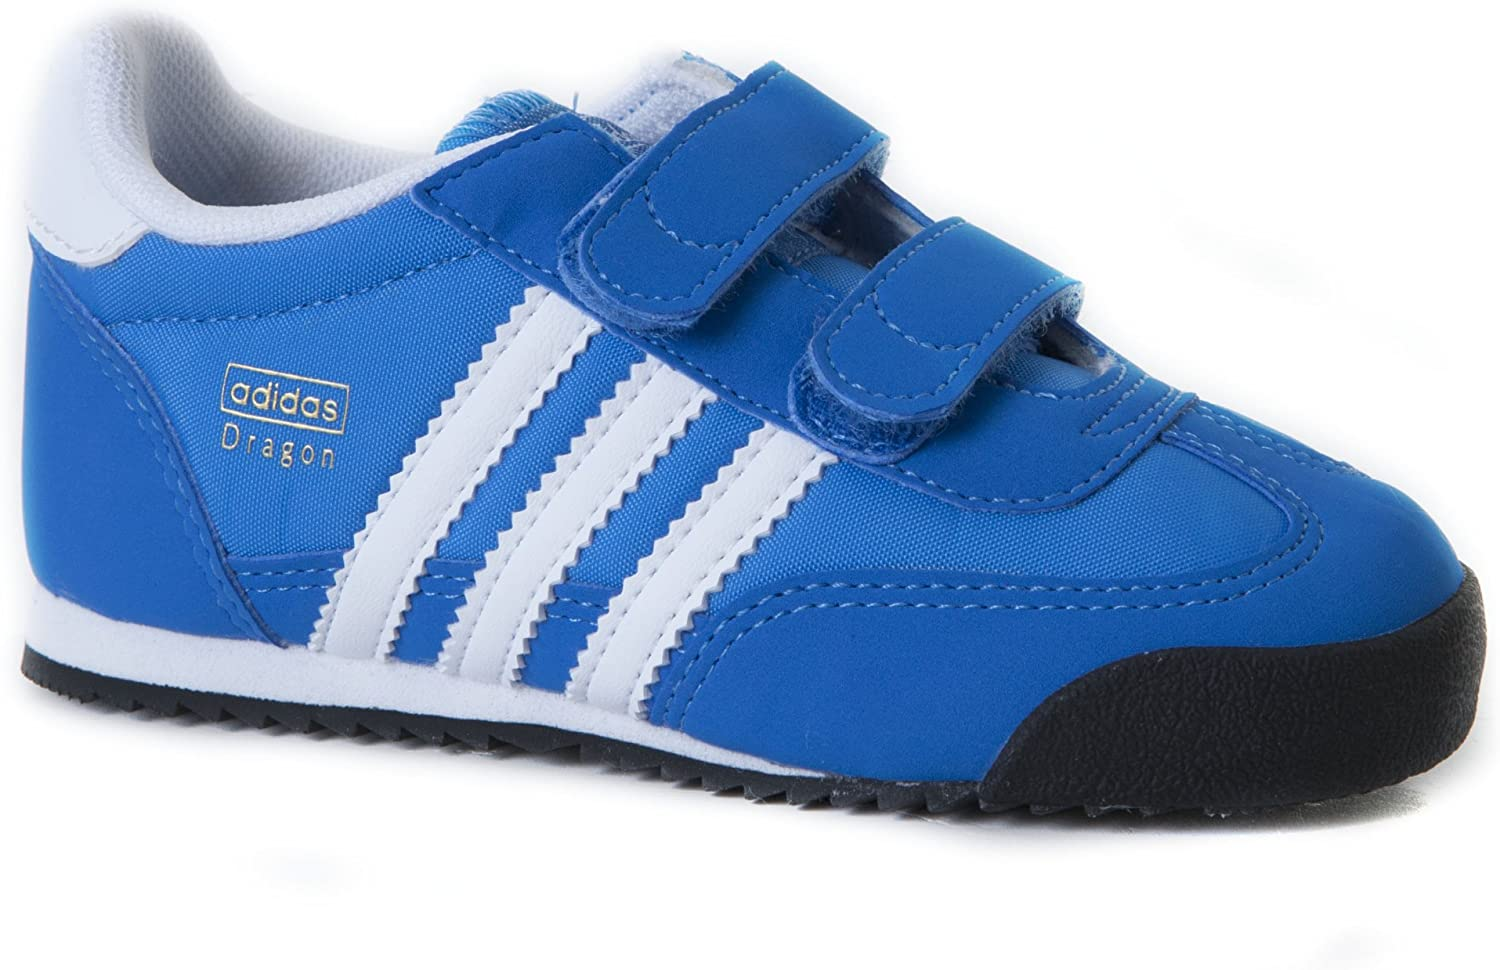 adidas Dragon CF 1 Blue/White G60934 Trainers for Toddler Boys ...